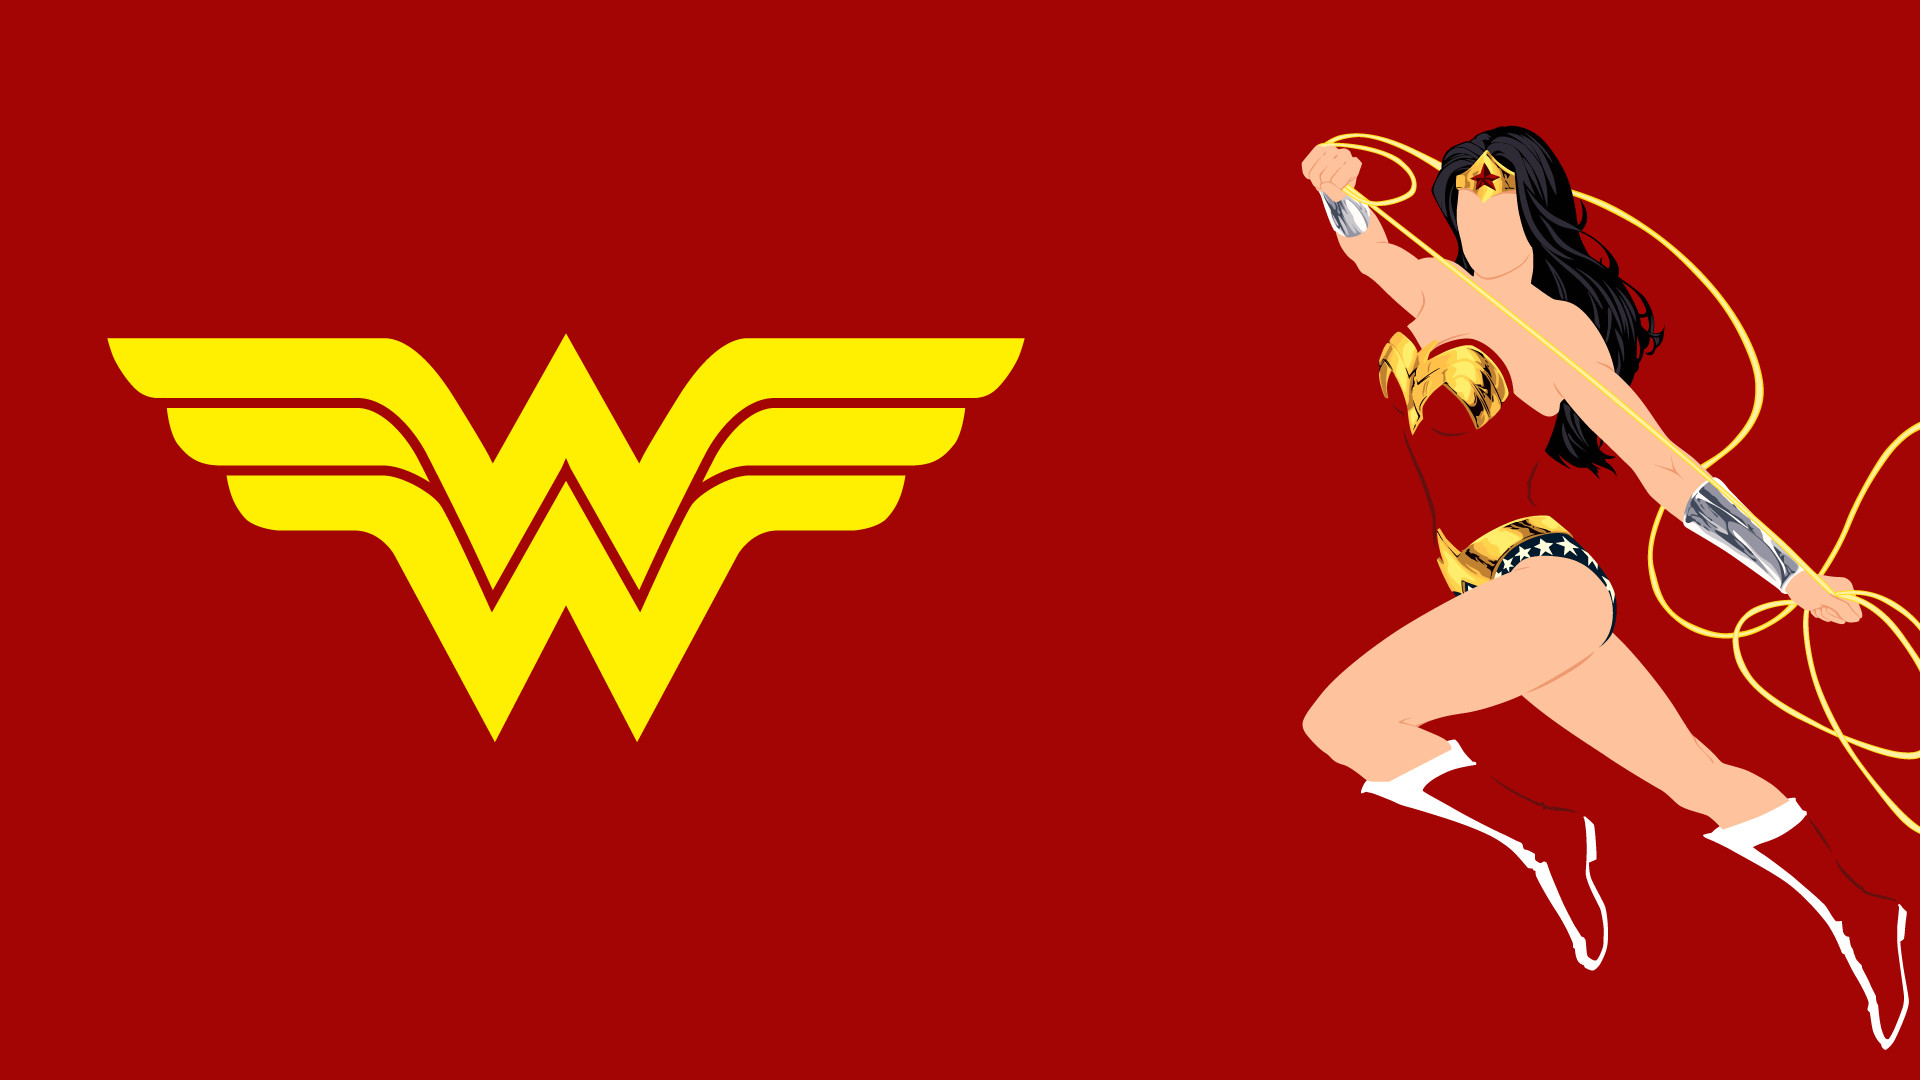 Wonder woman logo wallpaper 61 images 1920x1080 wonder woman logo template wonder woman paper logo template pronofoot35fo Gallery